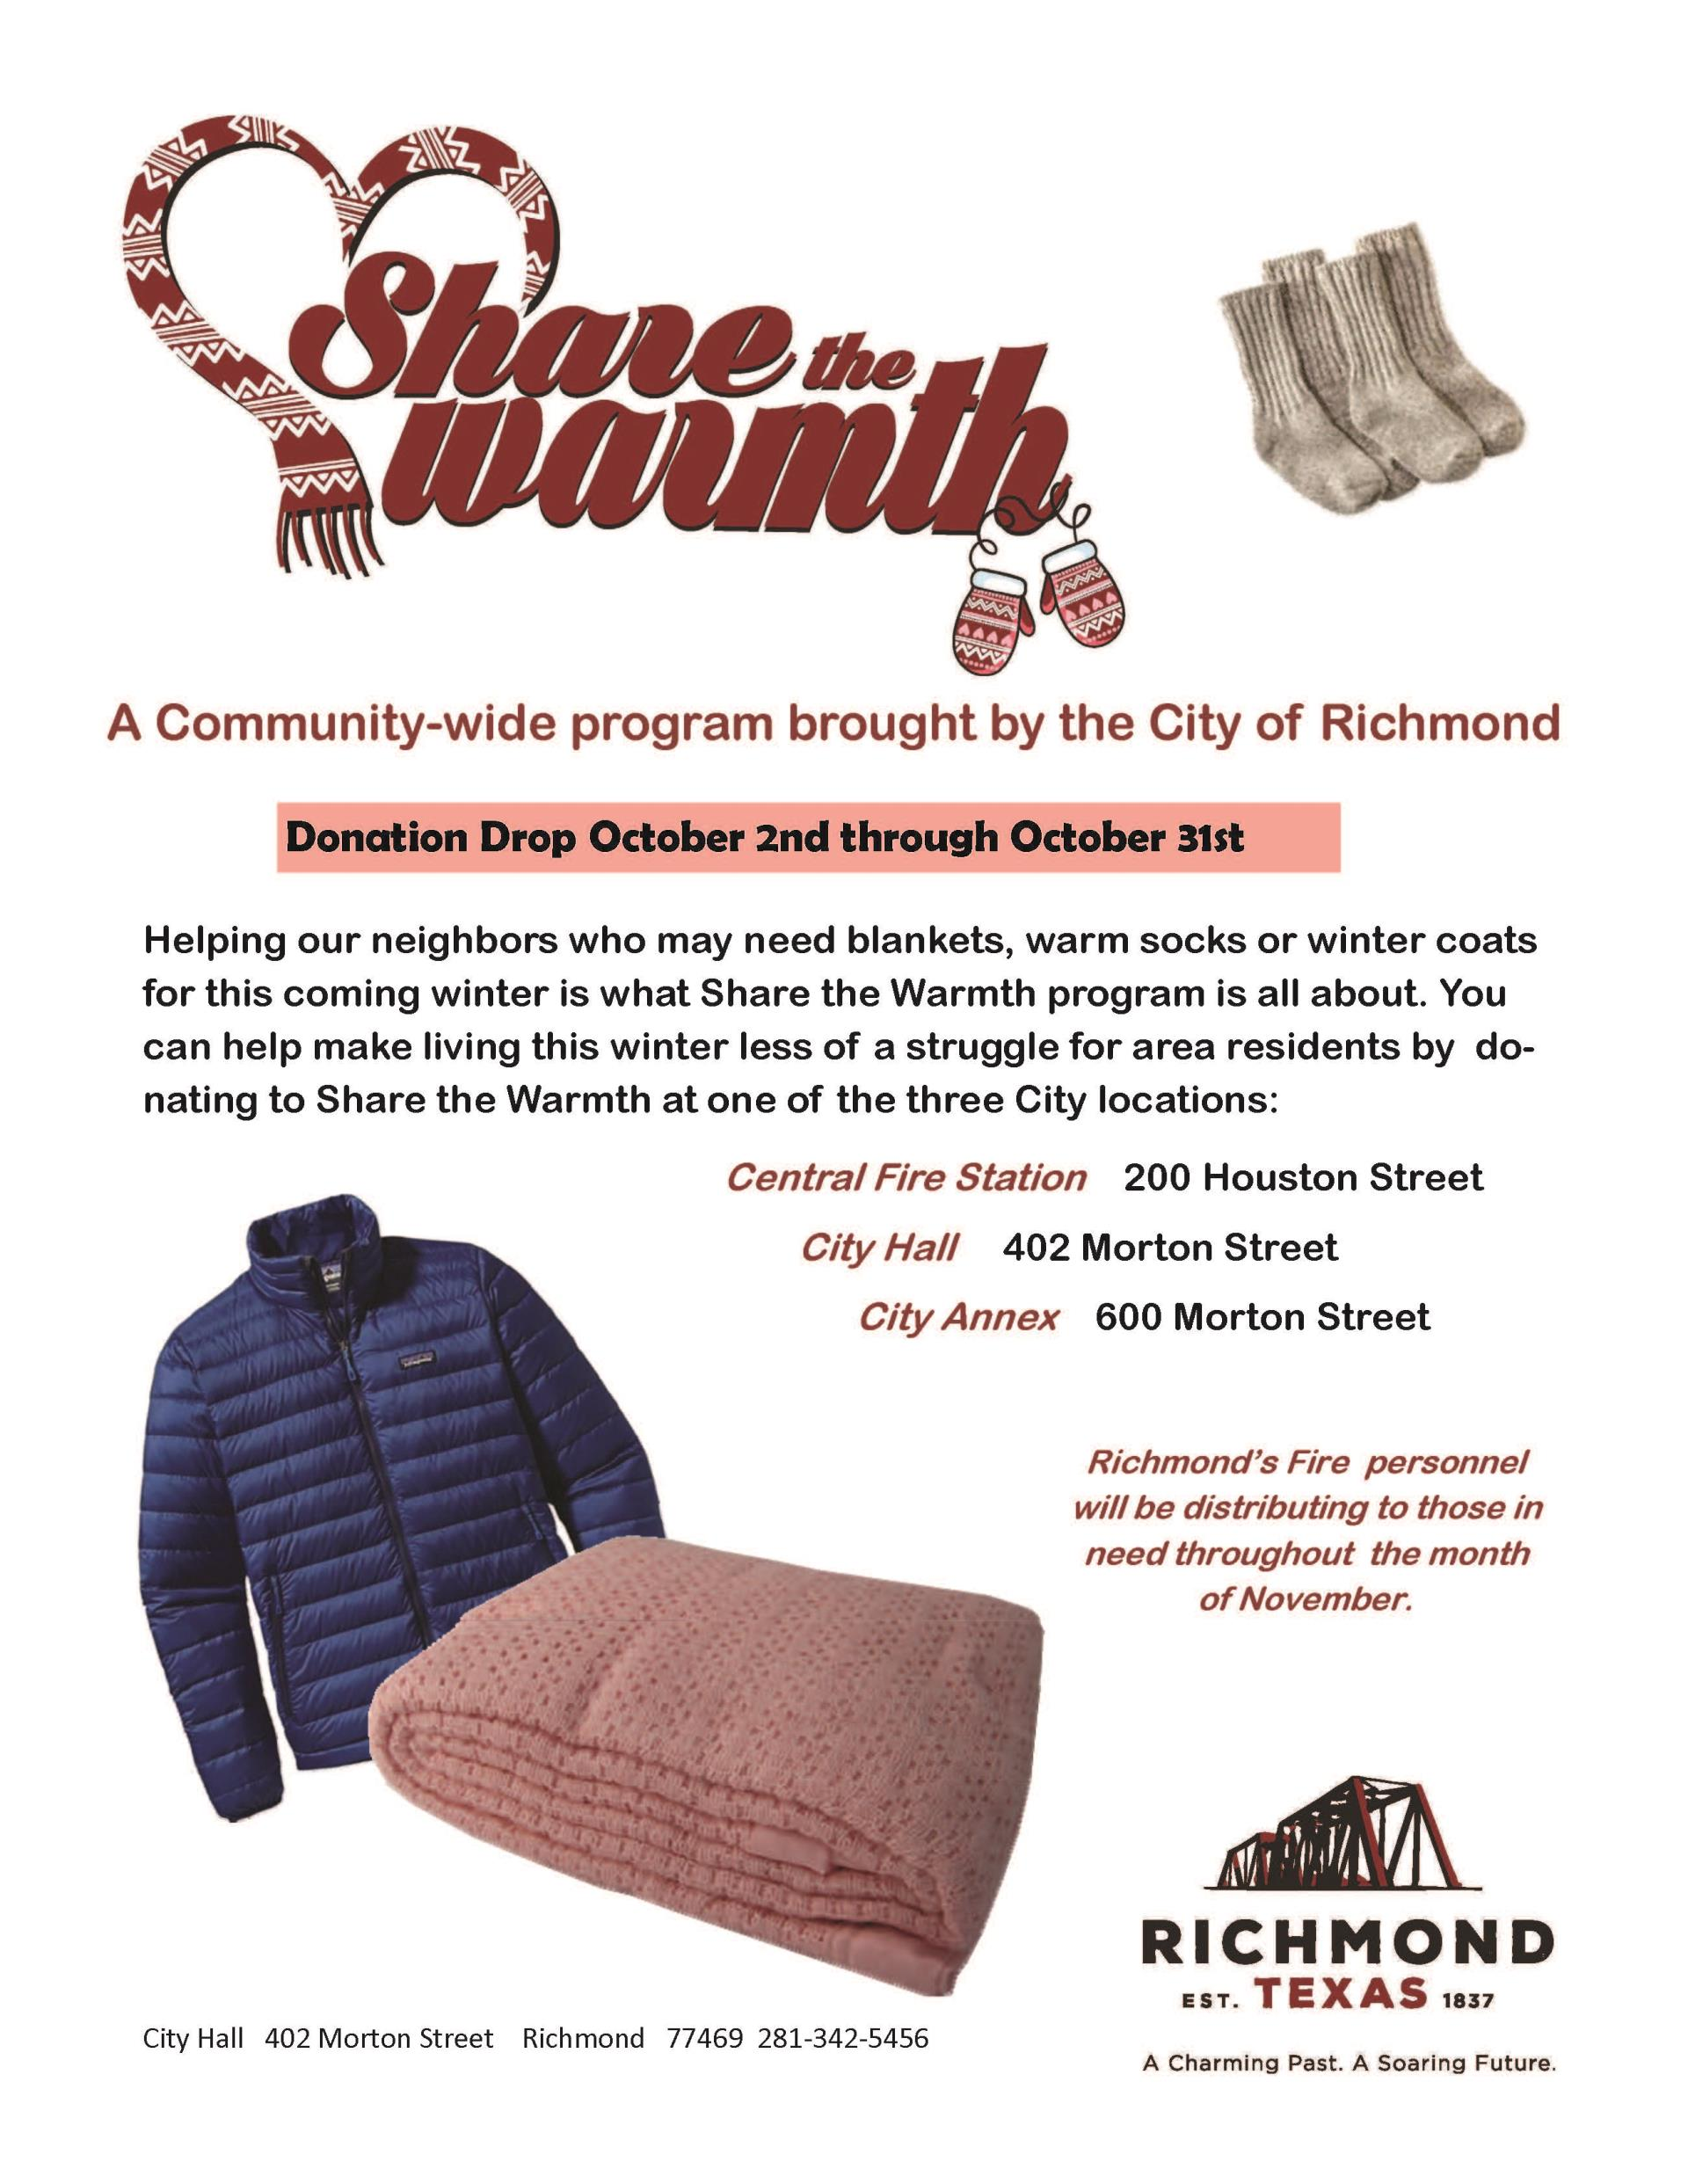 The City of Richmond's Share The Warmth Community Program Ends